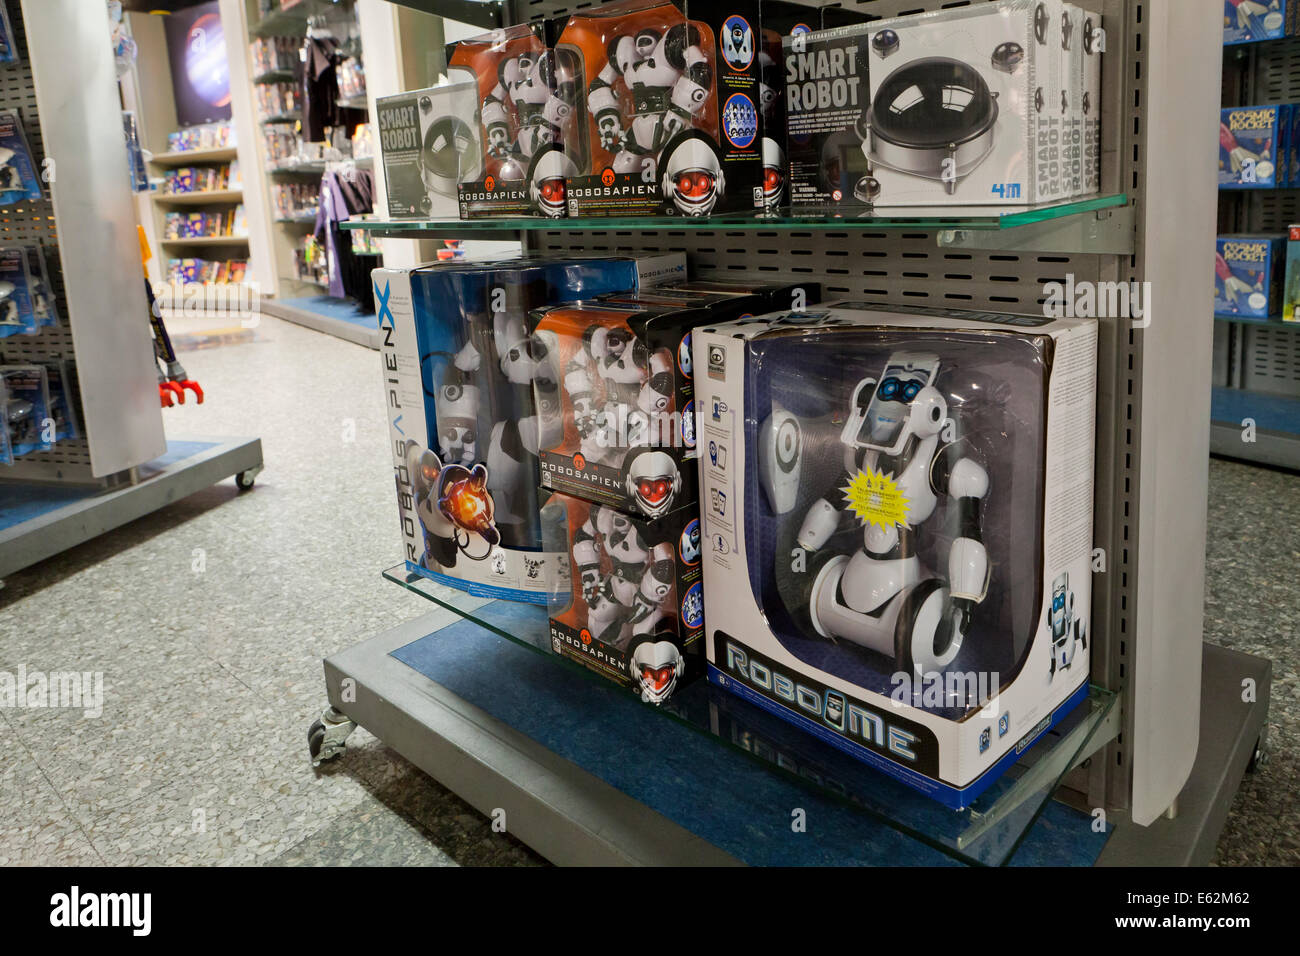 Toy robots on shelf at toy store - USA Stock Photo